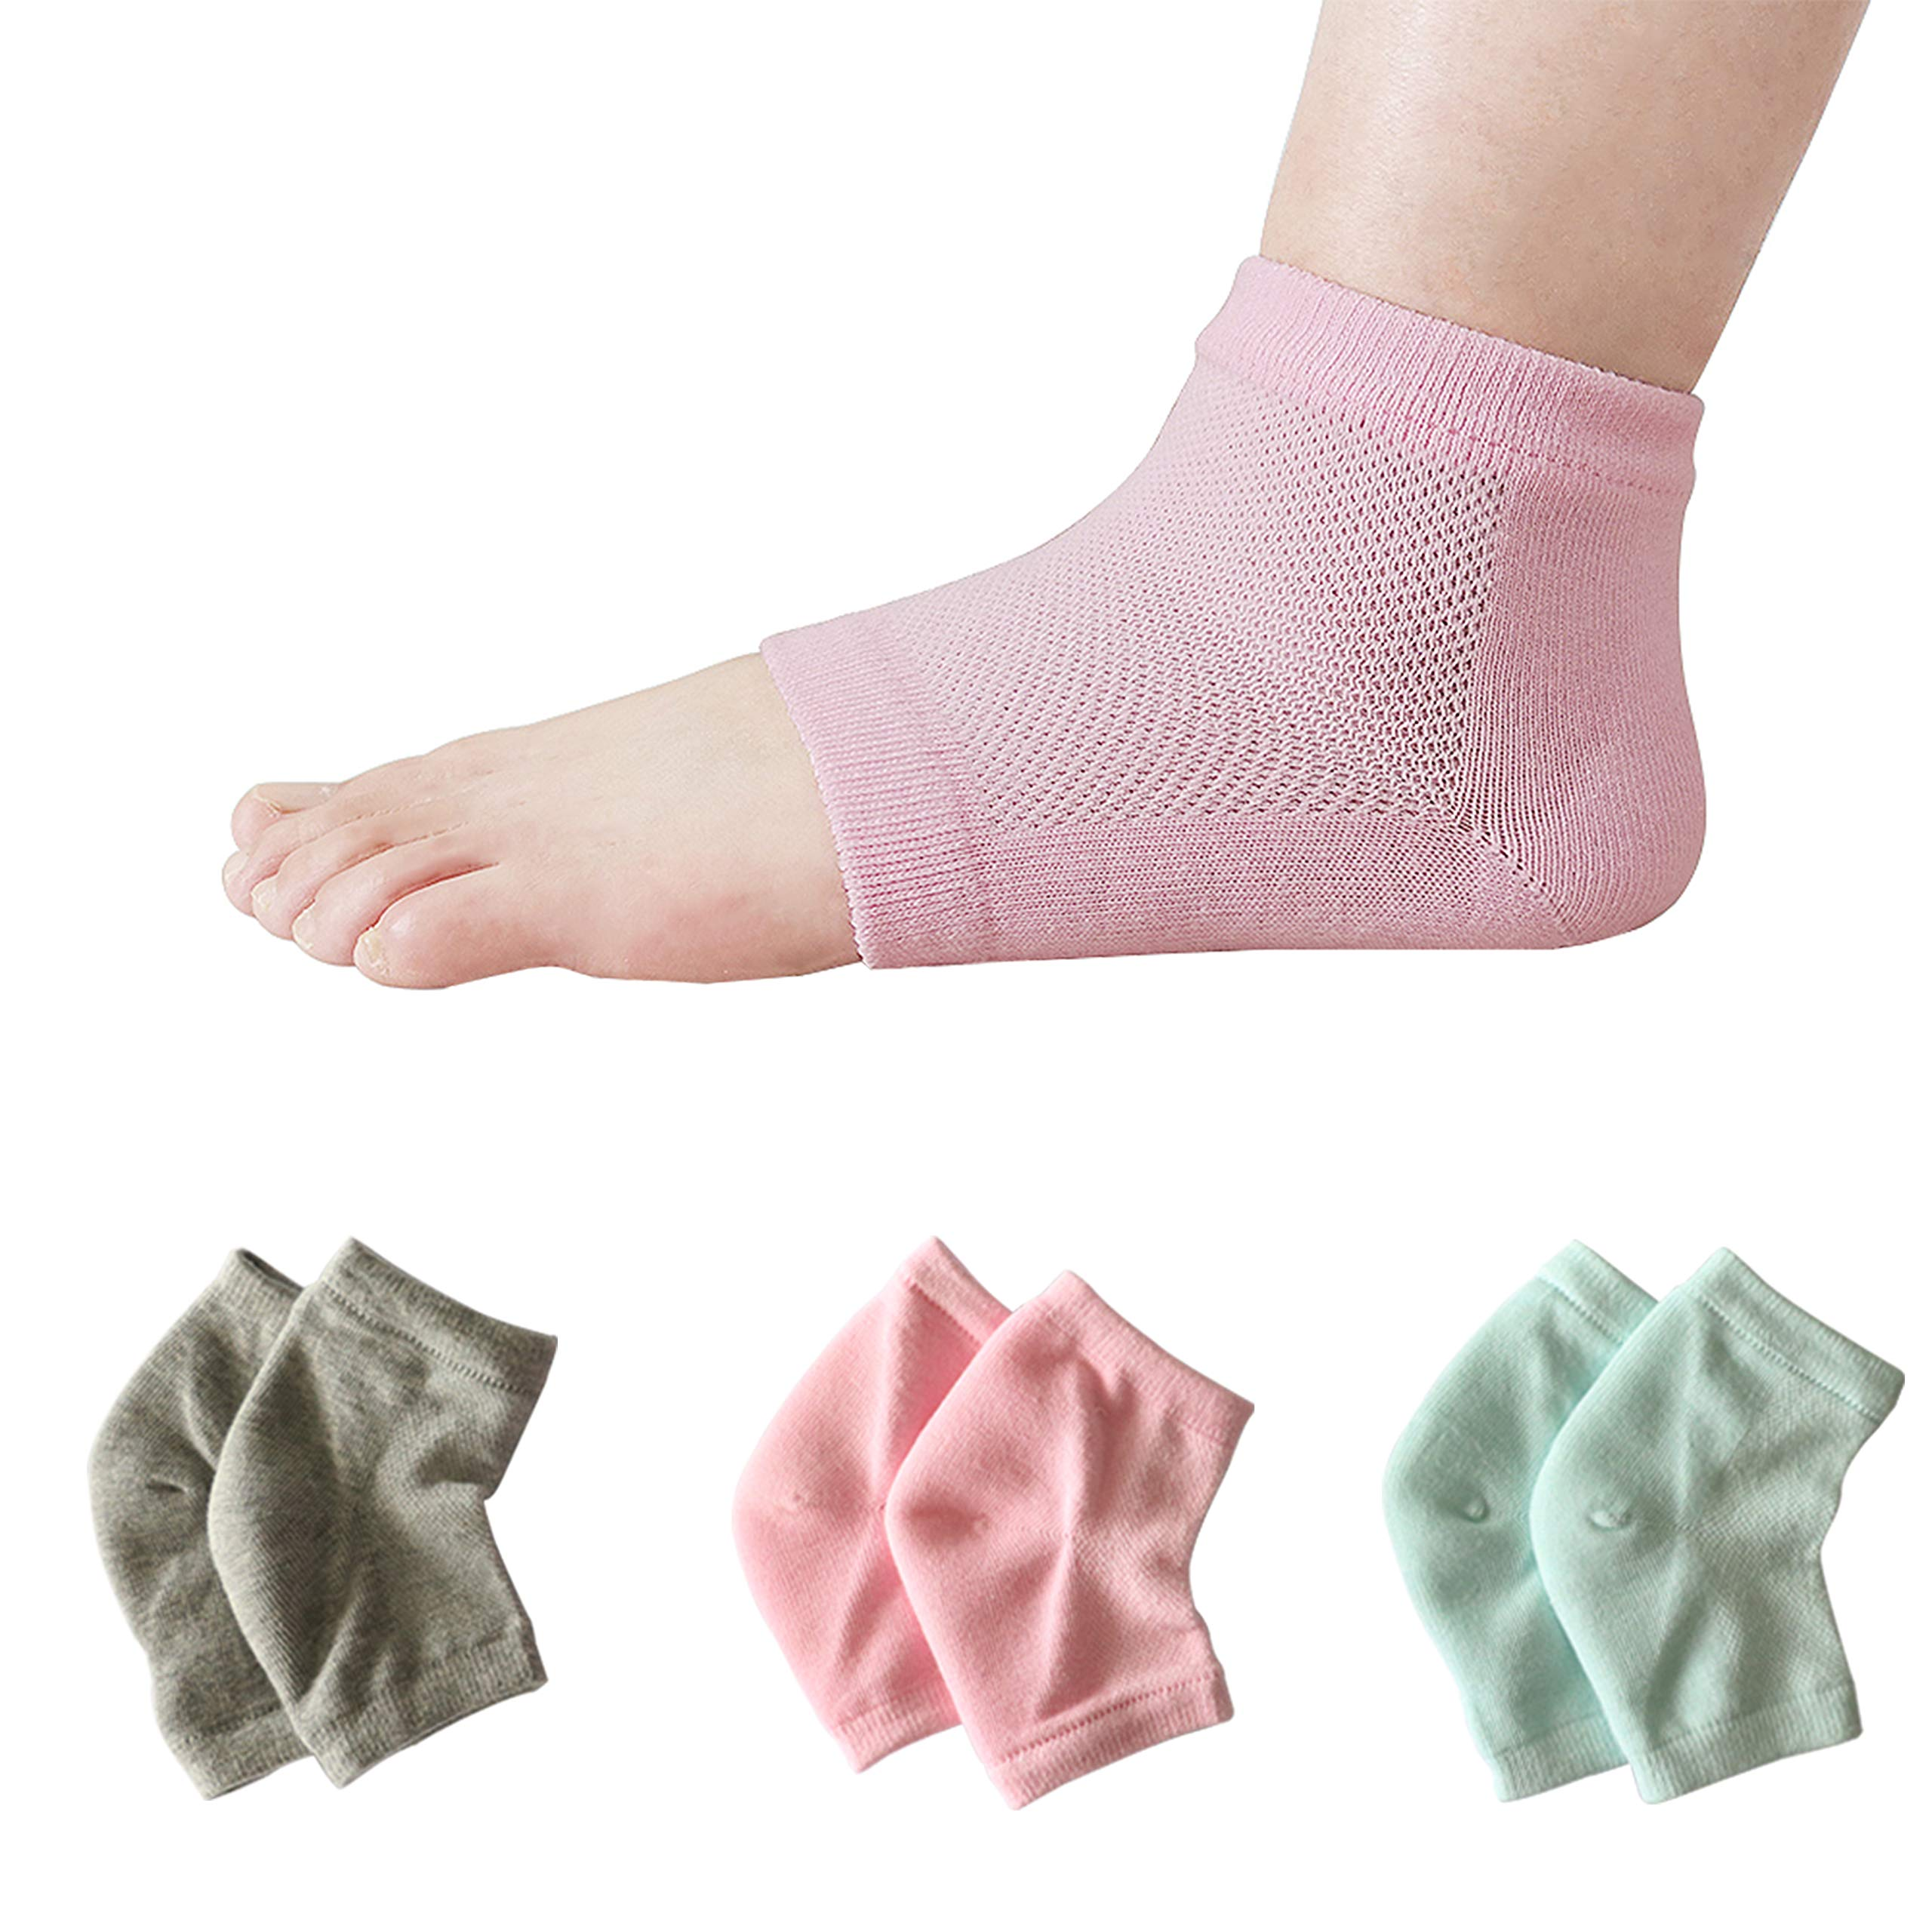 3 pairs Vented Moisturizing Heel Socks, Smeala Day Night Open Care Toed Breathable Recovery Cotton Socks, Silicone Gel to Heal Dry Cracked Heels and Repair Feet